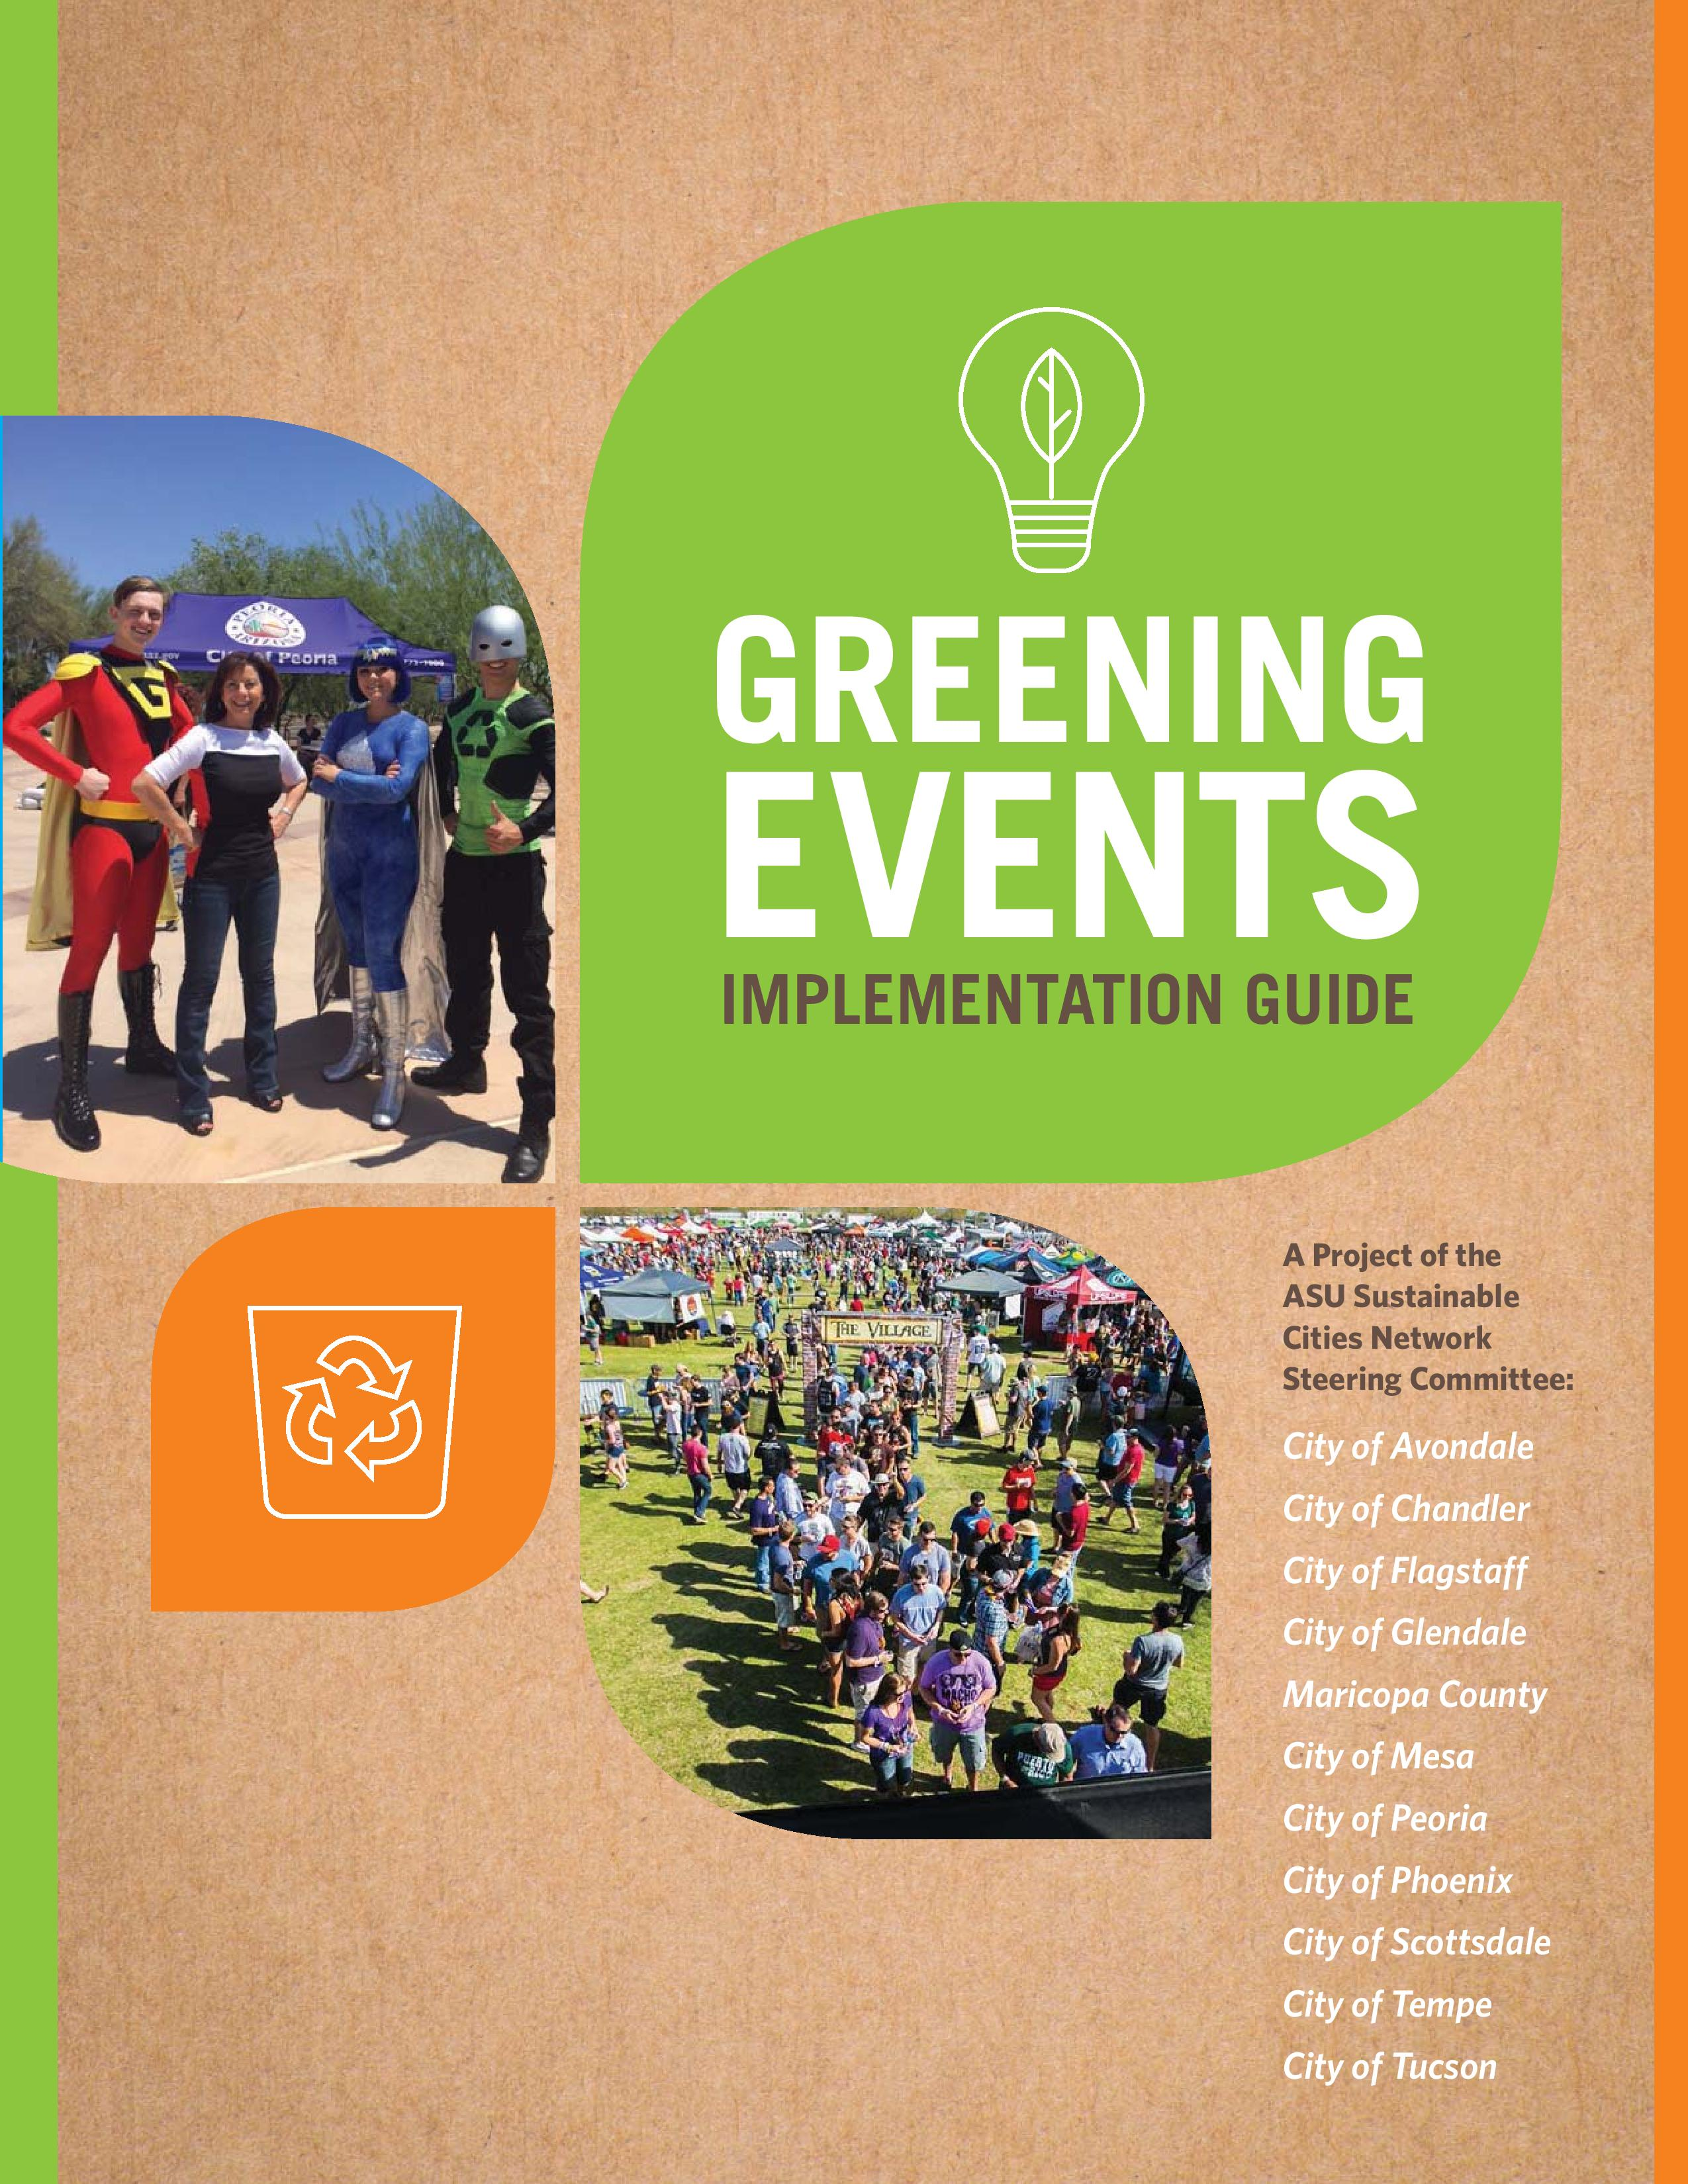 greening events pdf Greening Events Implementation Guide PDF